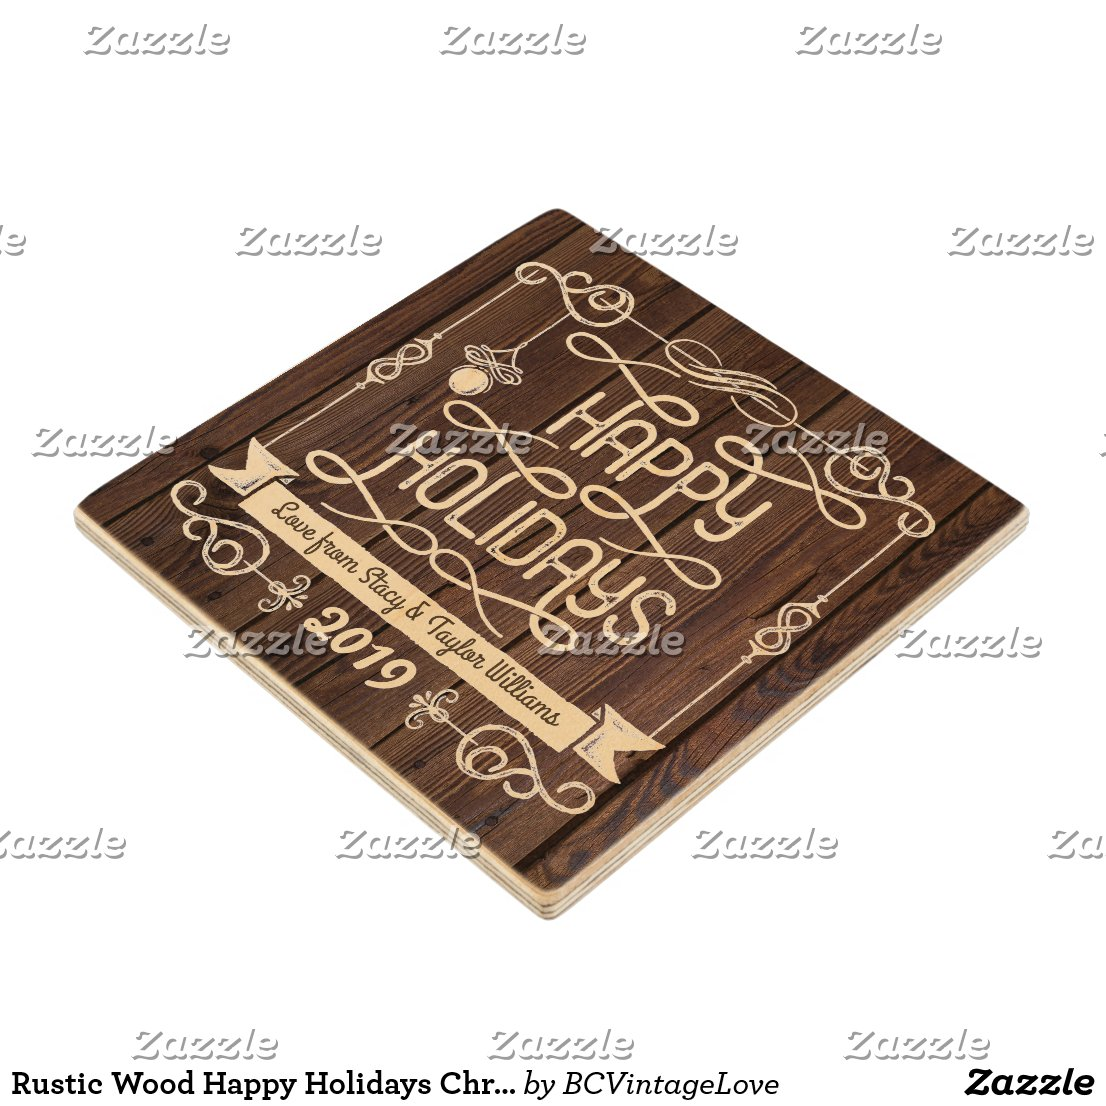 Rustic Wood Happy Holidays Christmas Typography Wooden Coaster